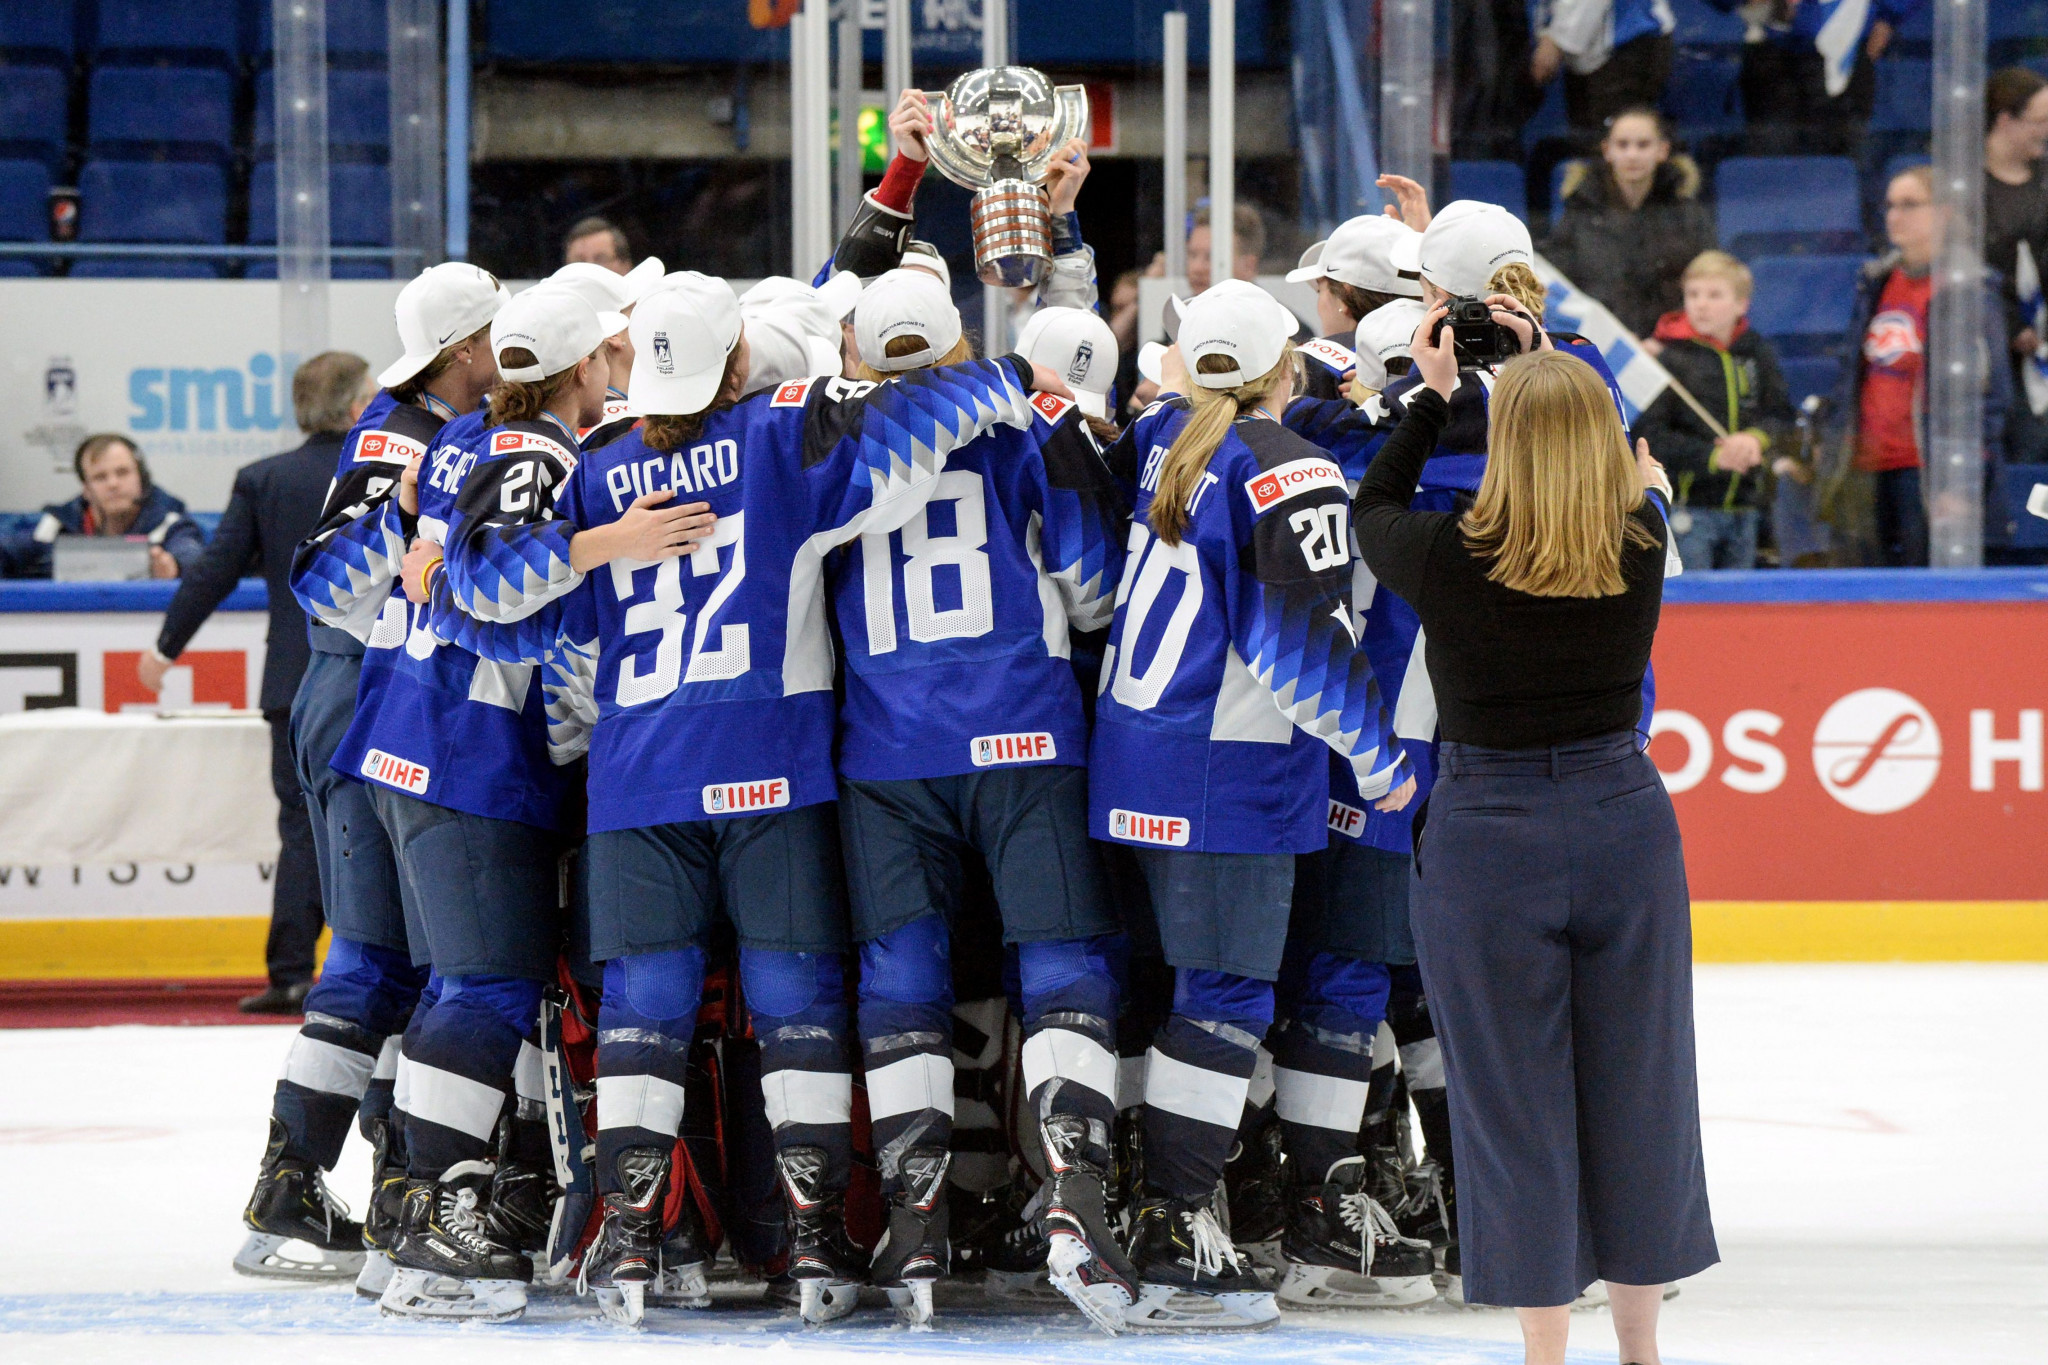 Game schedule released for Women's World Ice Hockey Championship